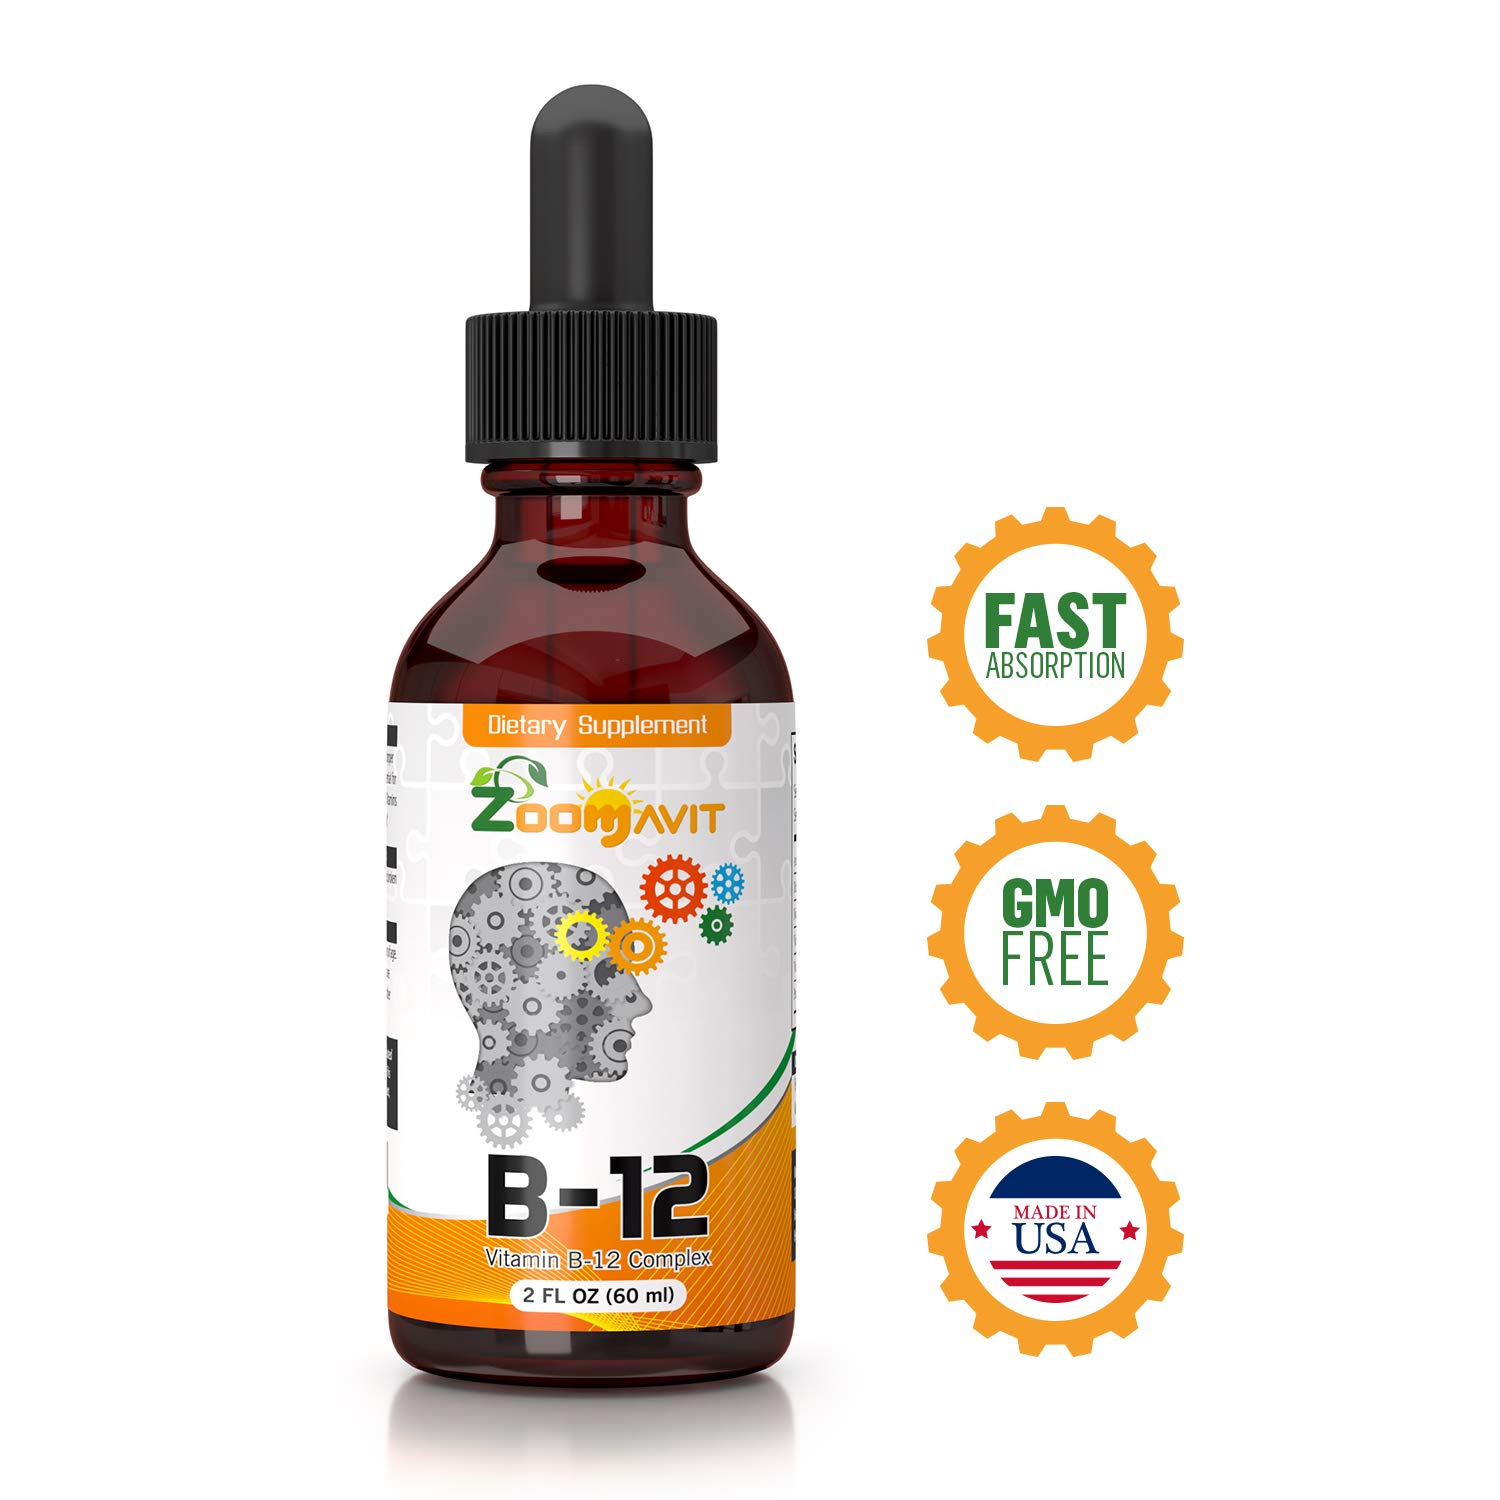 Vitamin B Complex Liquid Drops with Fast Absorption - Super B Liquid Complex Vitamins B2, B3, B5, B6 & B12 - Natural Energy Boost, Mental Focus & Healthy Immune System by Zoomavit